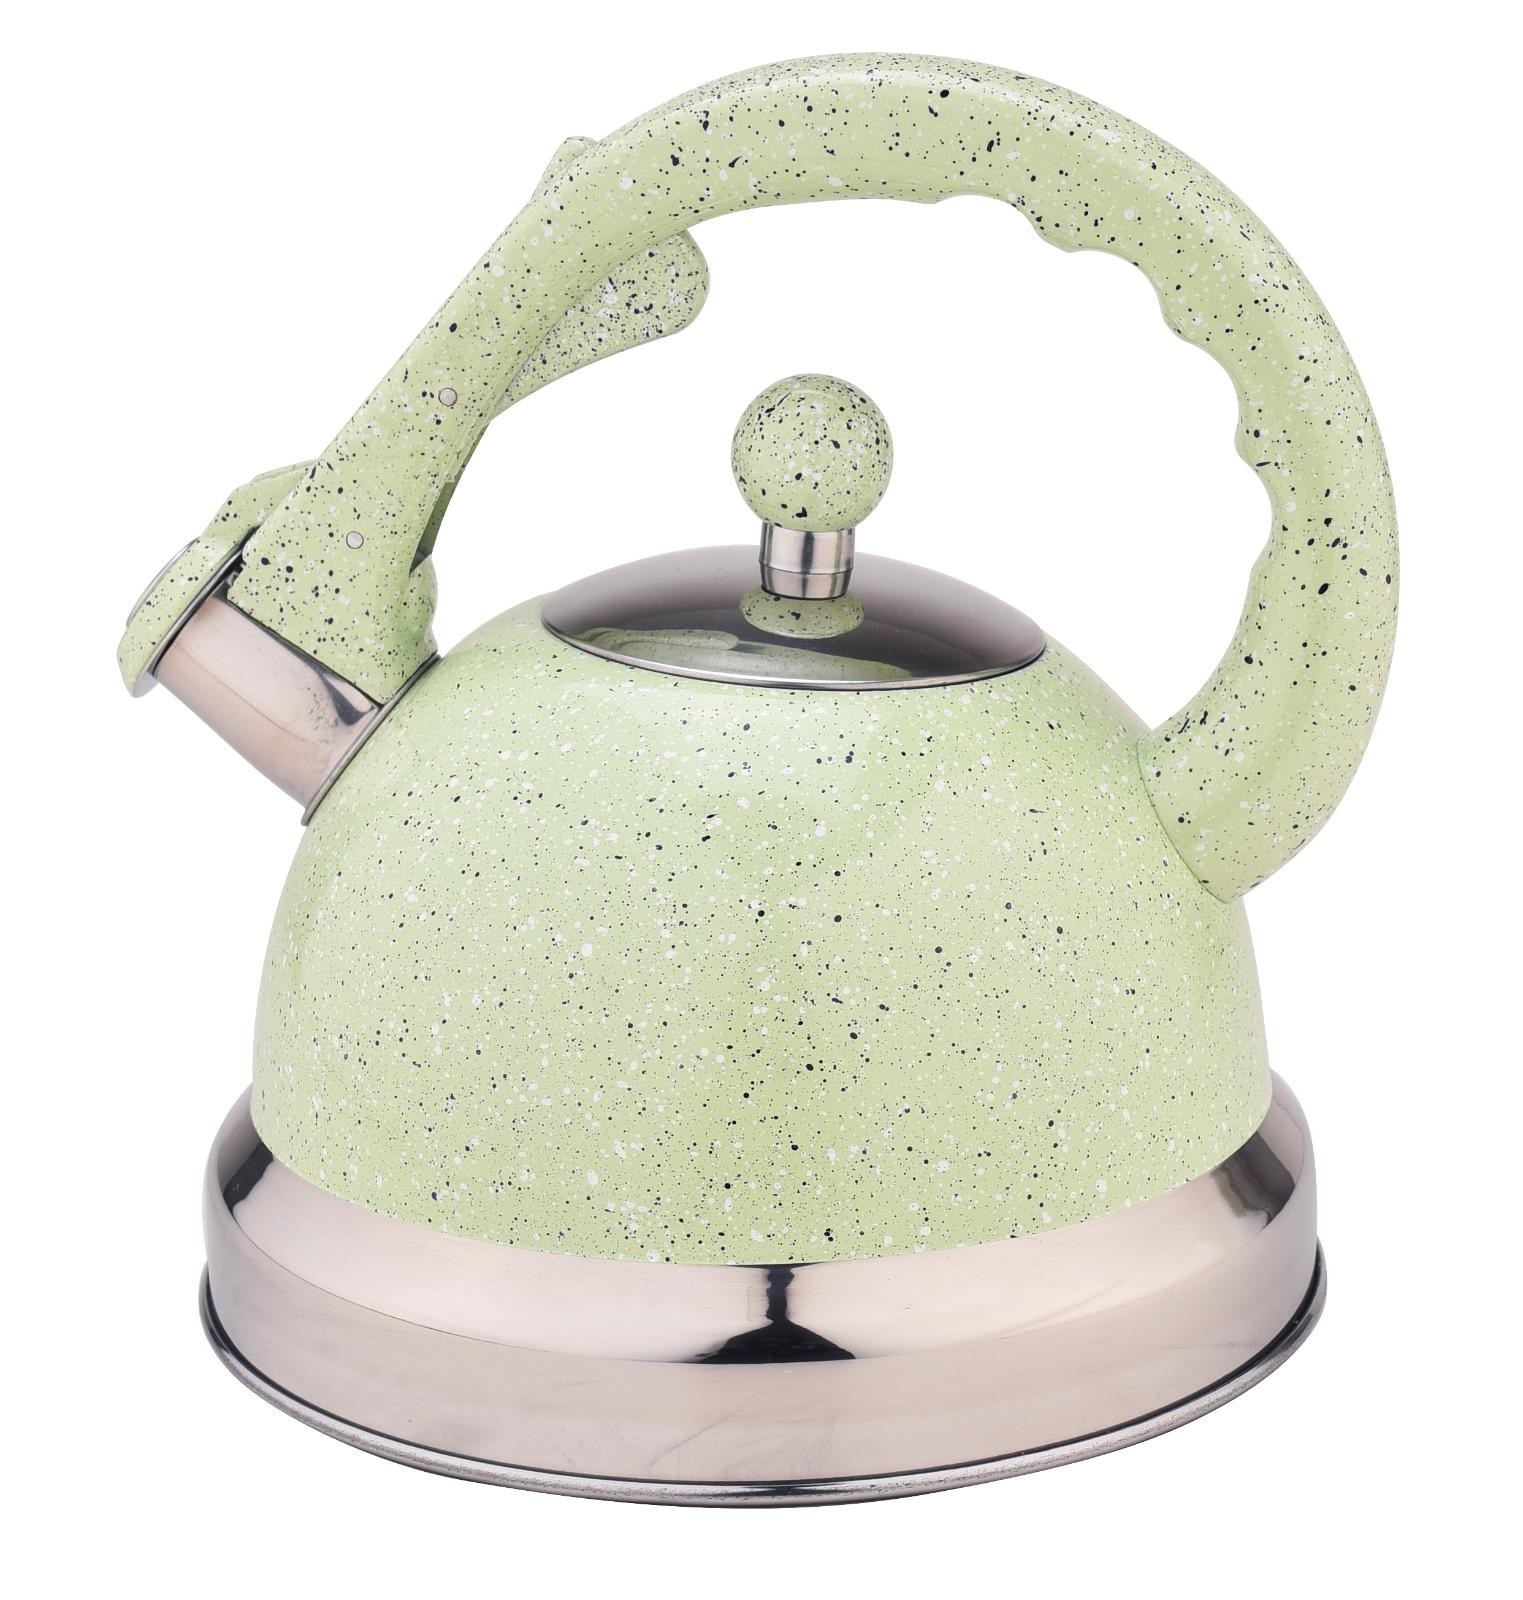 Water Kettle Pot Stovetop Teapot Stainless Steel Whistling T